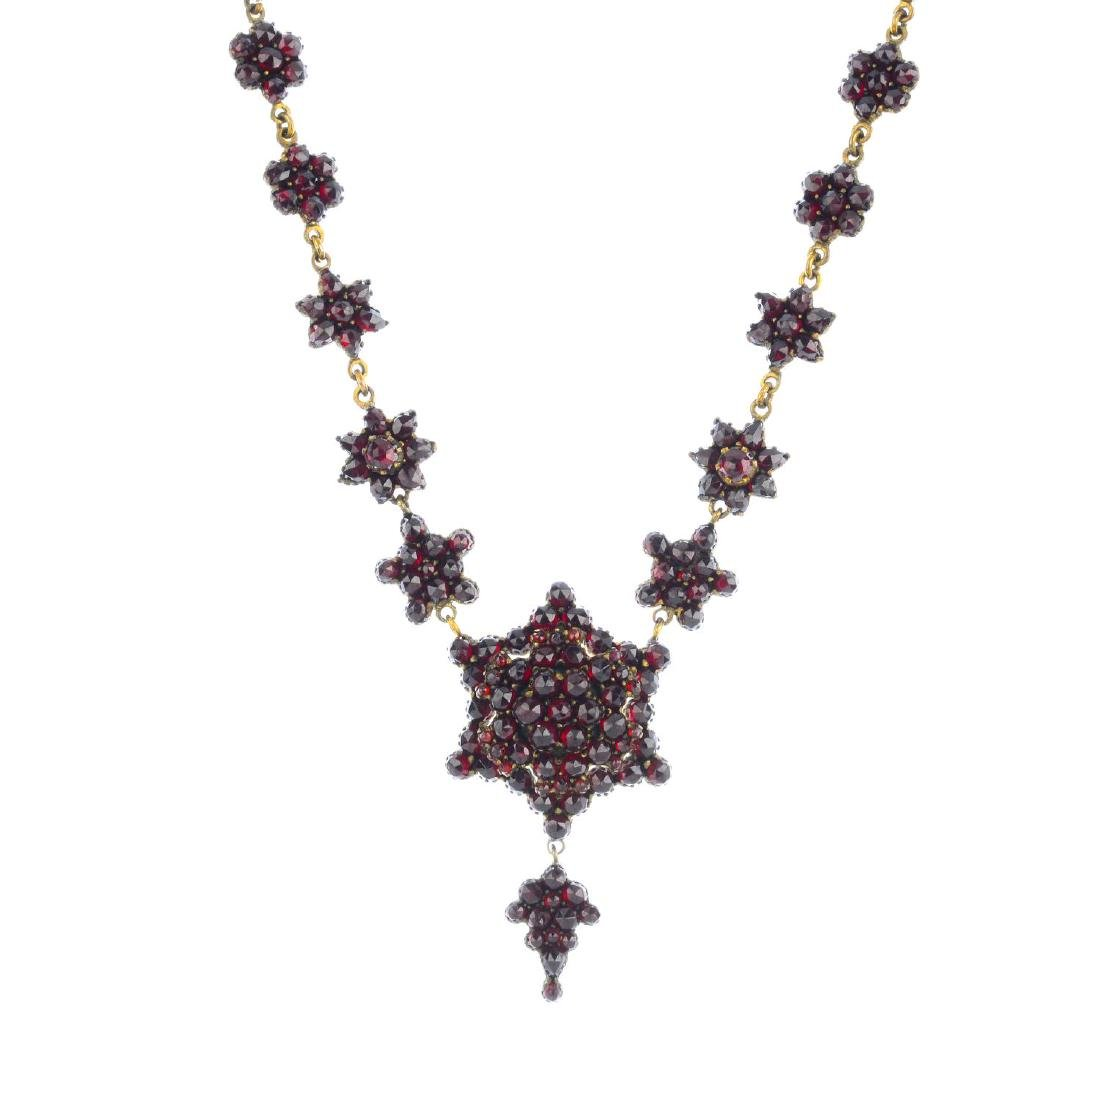 A late Victorian foil-backed garnet necklace. The